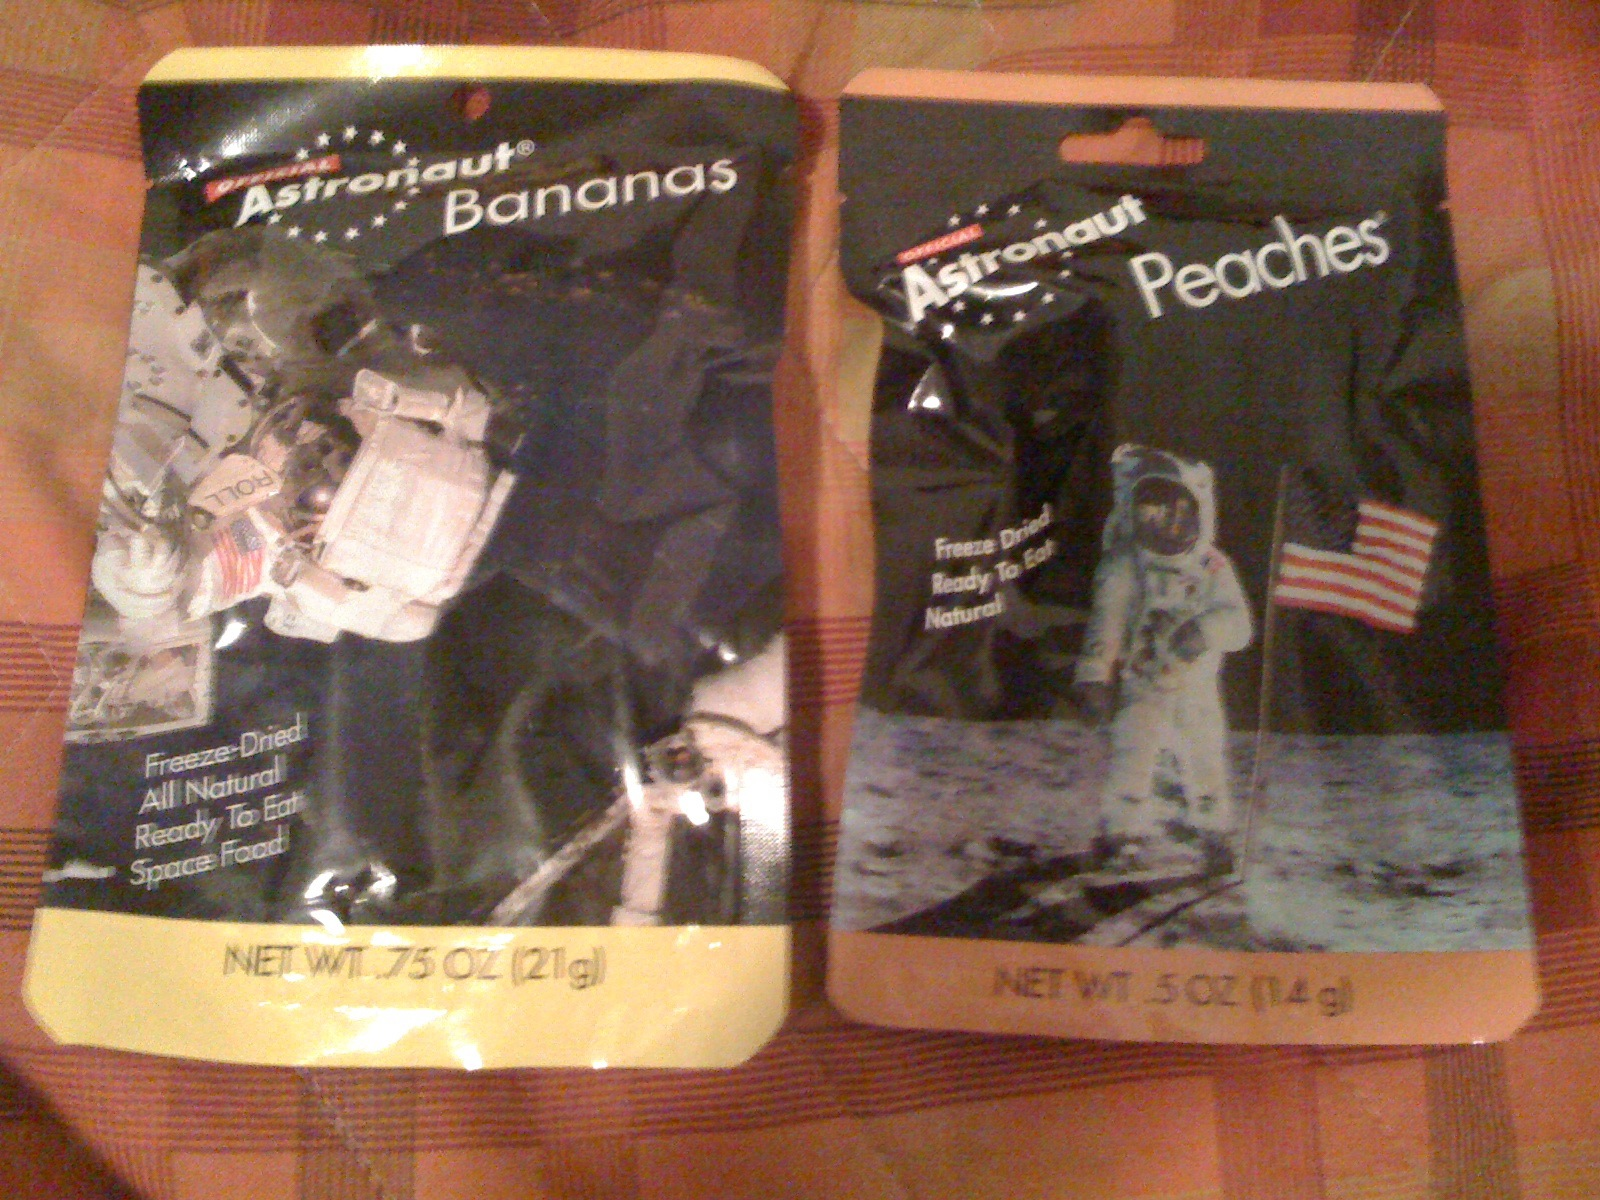 Food for astronauts (peaches and bananas)